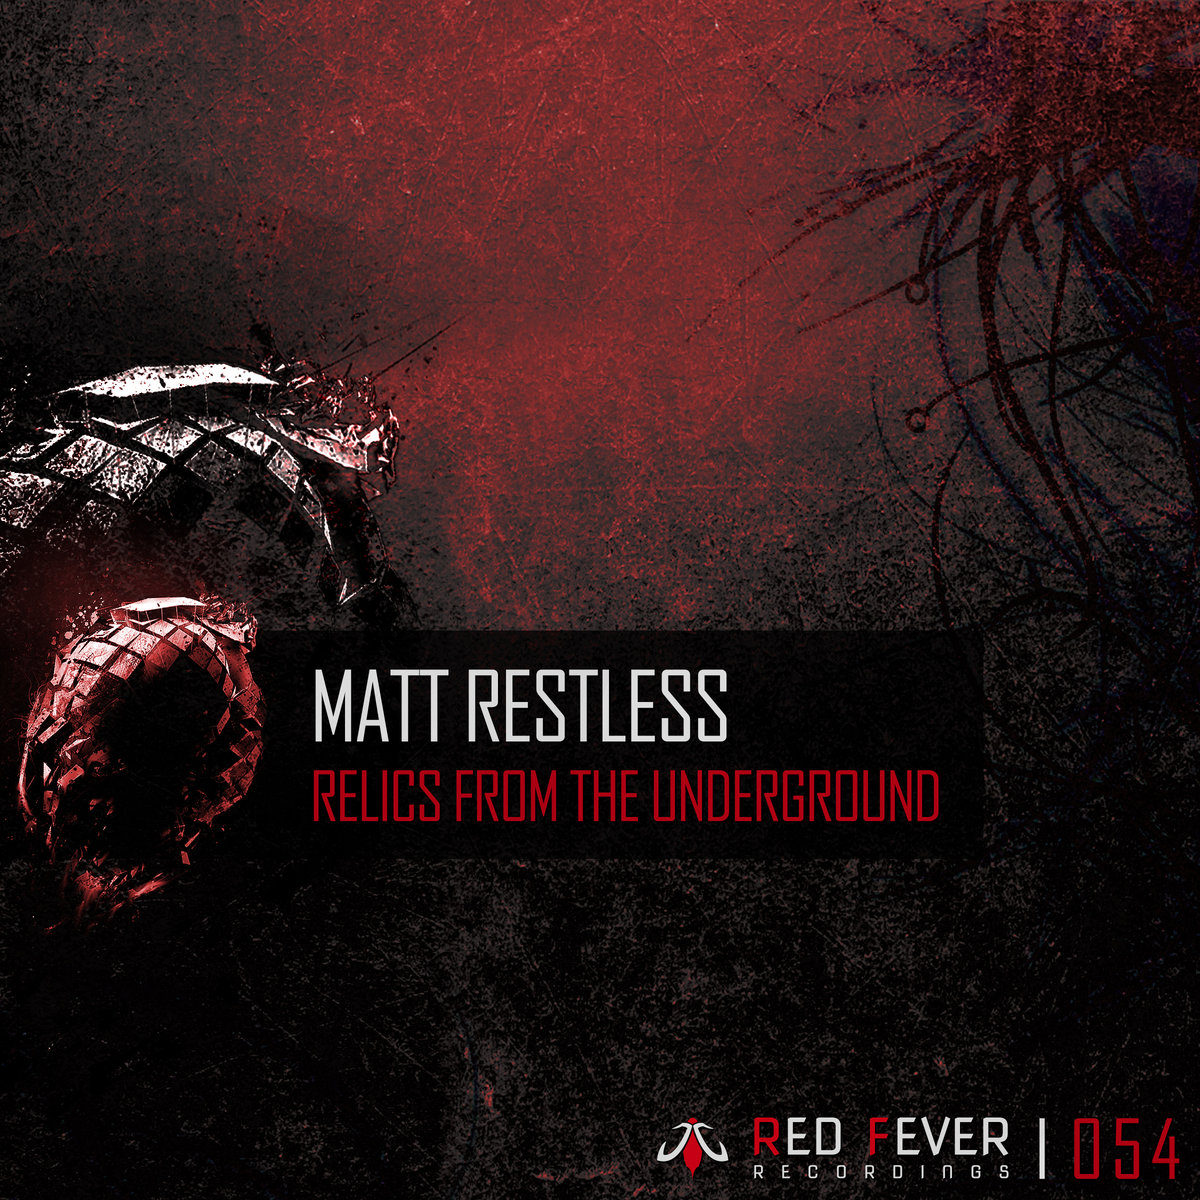 Matt Restless - One with the beat @ 'Underground Relic' album (electronic, gabber)